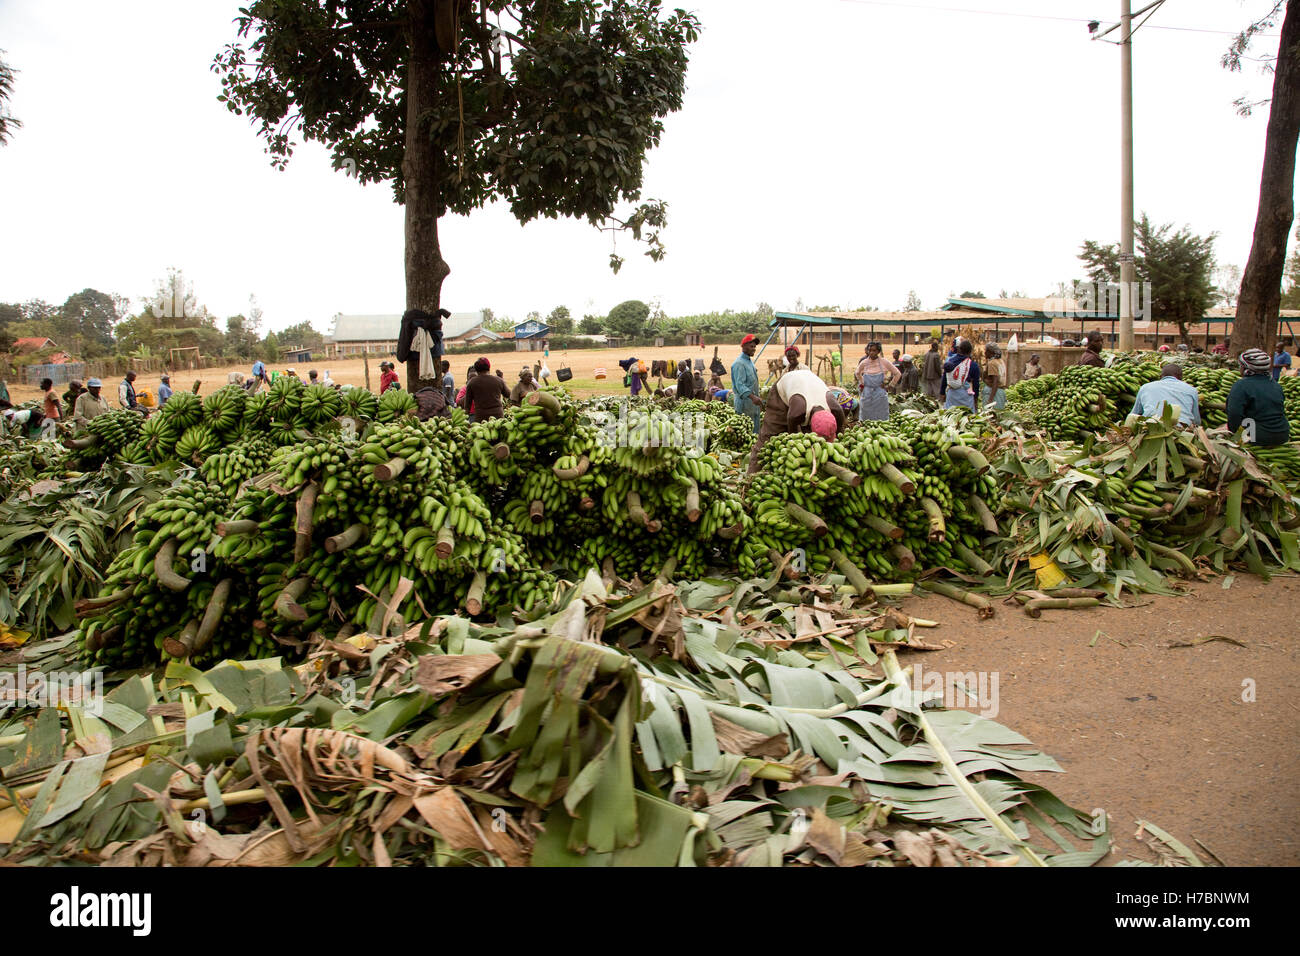 Huge bunches of bananas for sale at side of road near meru kenya stock image